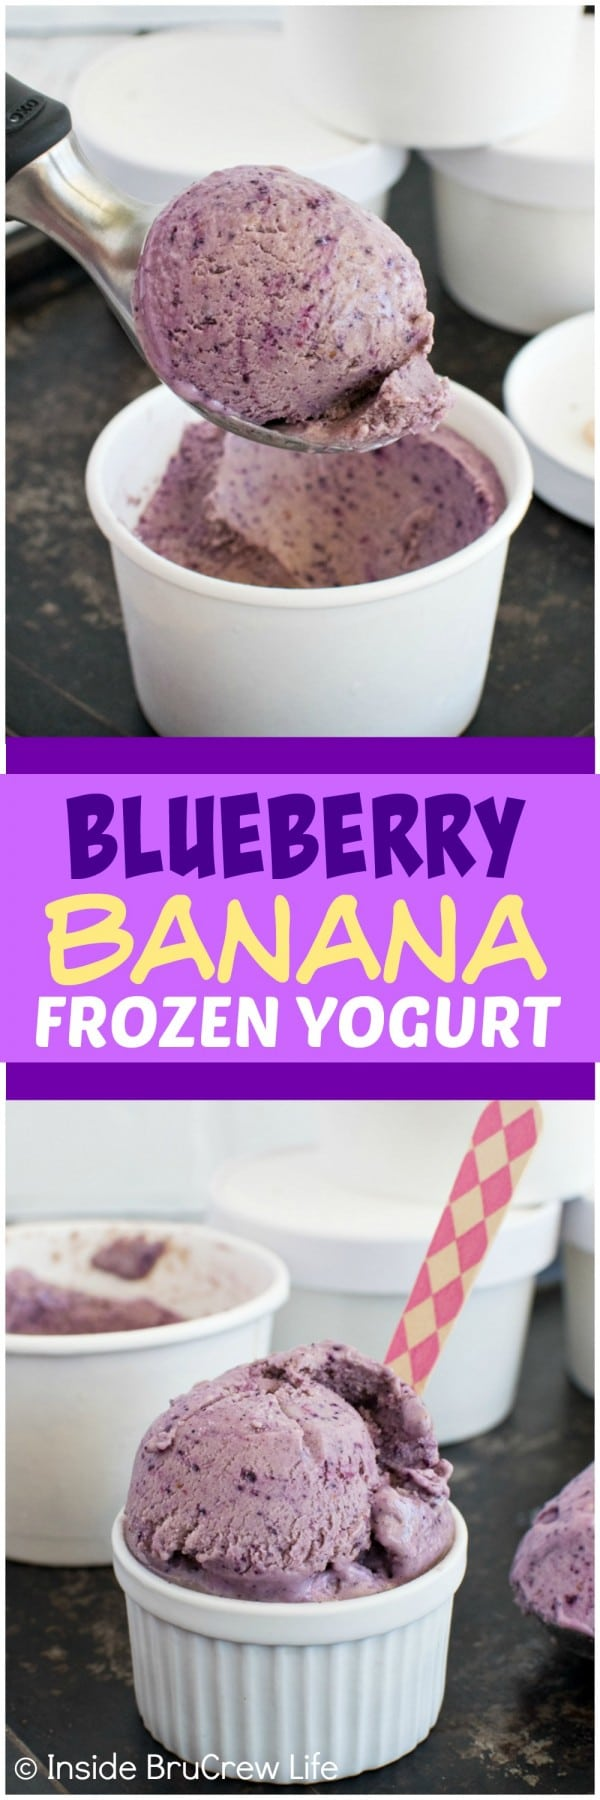 Blueberry Banana Frozen Yogurt - frozen fruit and yogurt make this healthy frozen treat an awesome snack on hot days! Awesome healthy recipe!